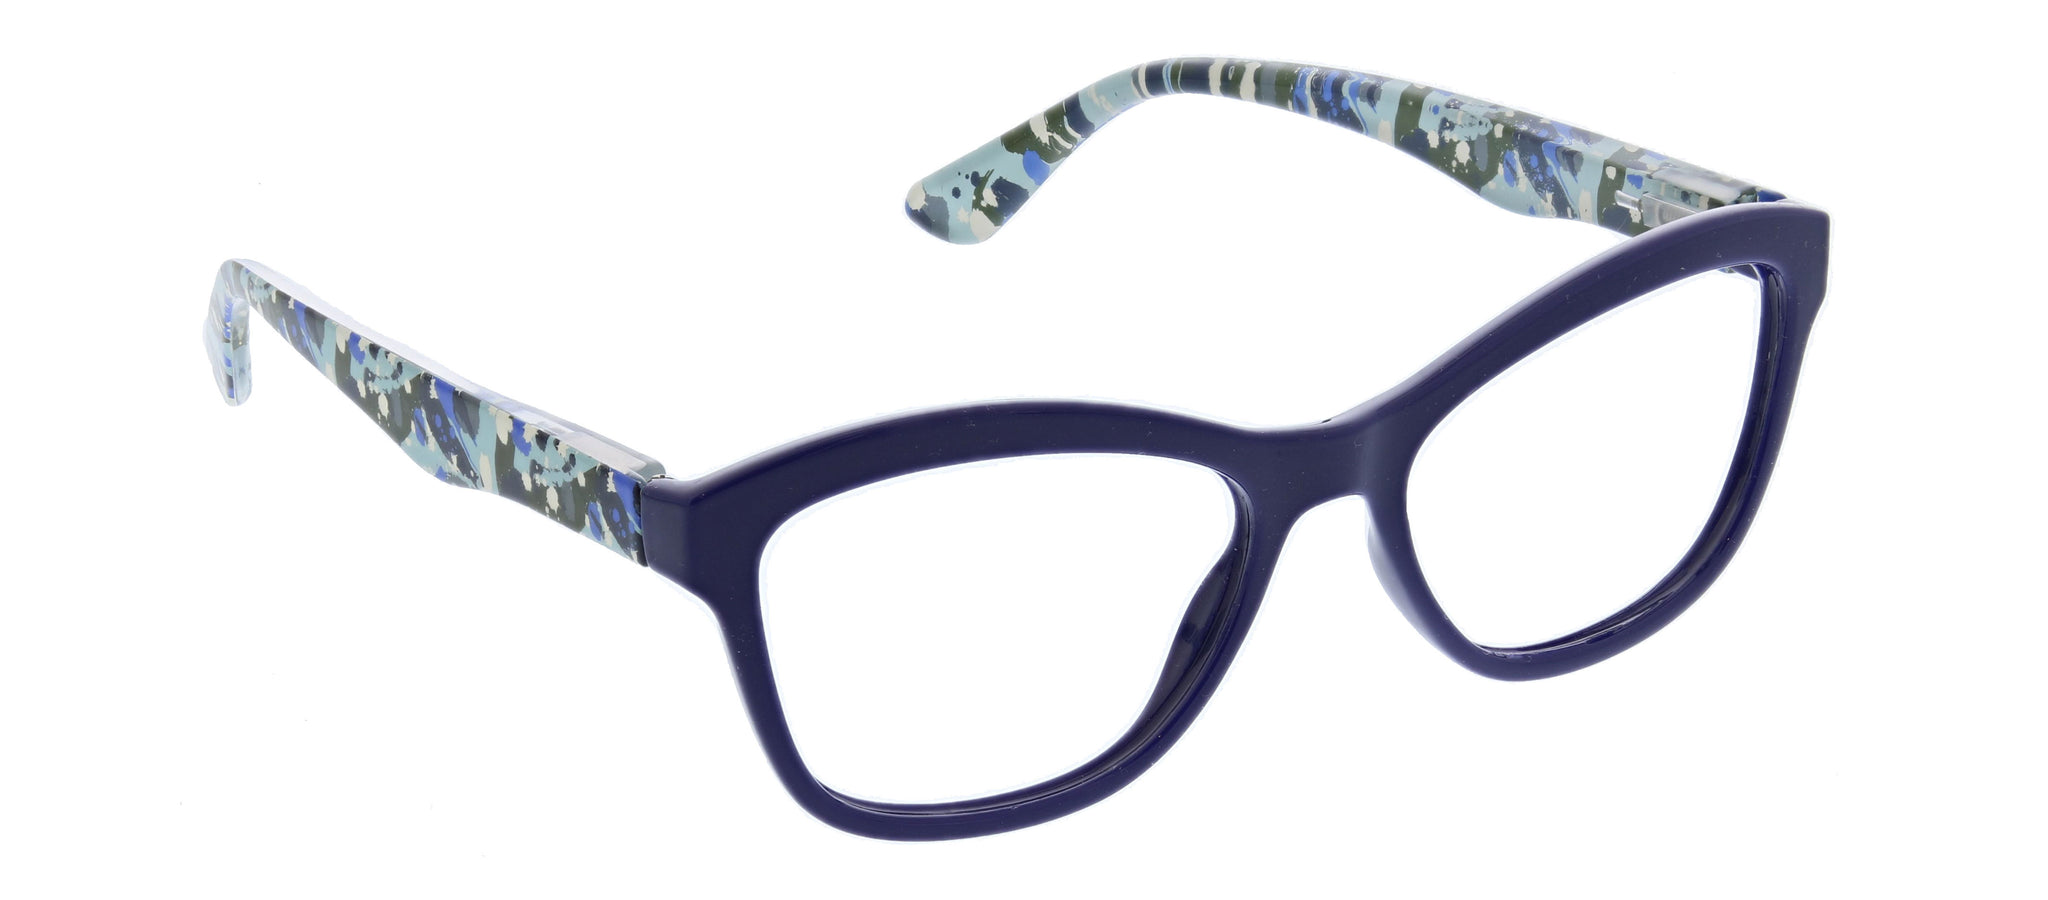 Brushwork blue light reading glasses in navy by Peepers